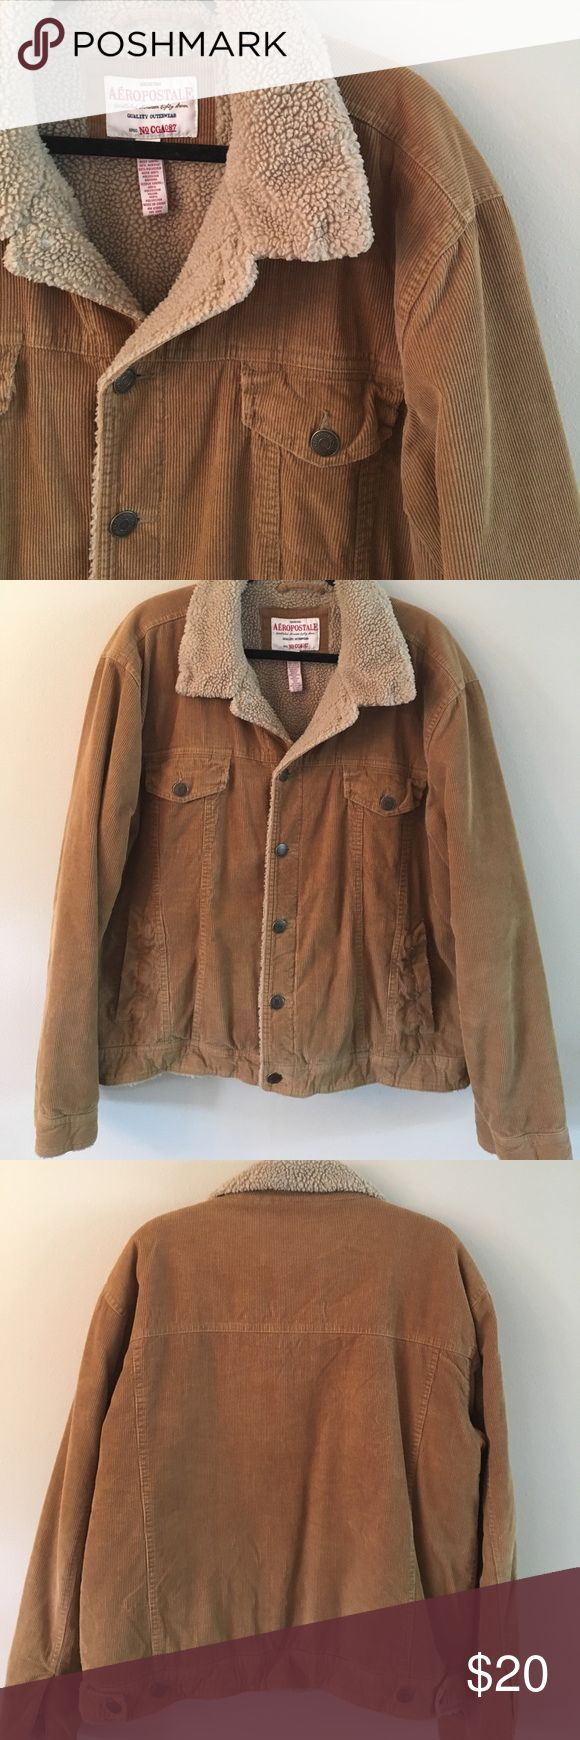 Aeropostale Men's Classic Corduroy jacket Aeropostale Men's Classic Corduroy jacket in a camel color. Great used condition,  minimal wear on pocket shown in photo.  Very warm, lined jacket! Aeropostale Jackets & Coats